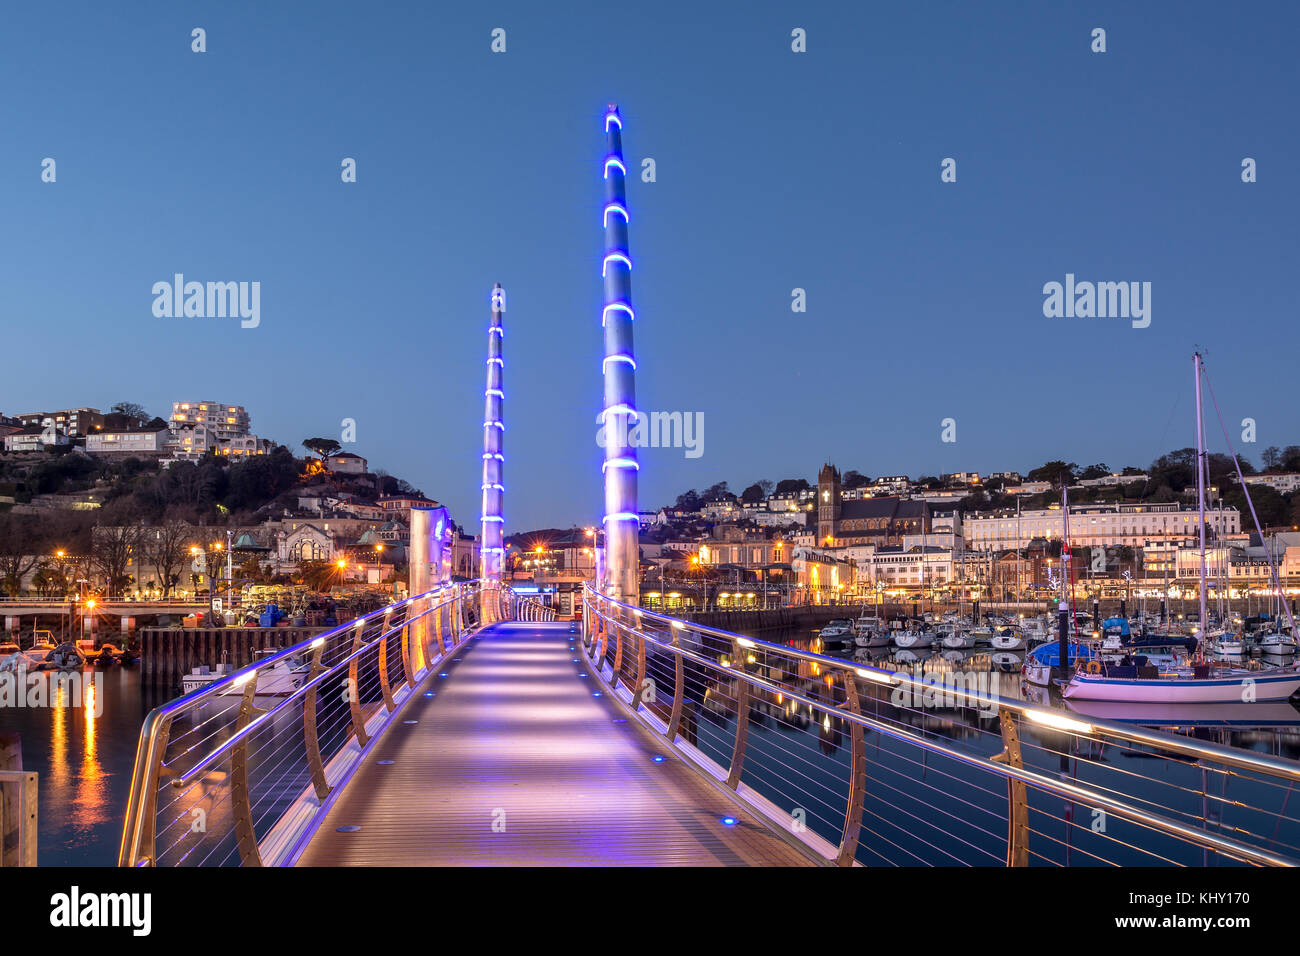 Torquay Harbour Bridge By Night - Stock Image